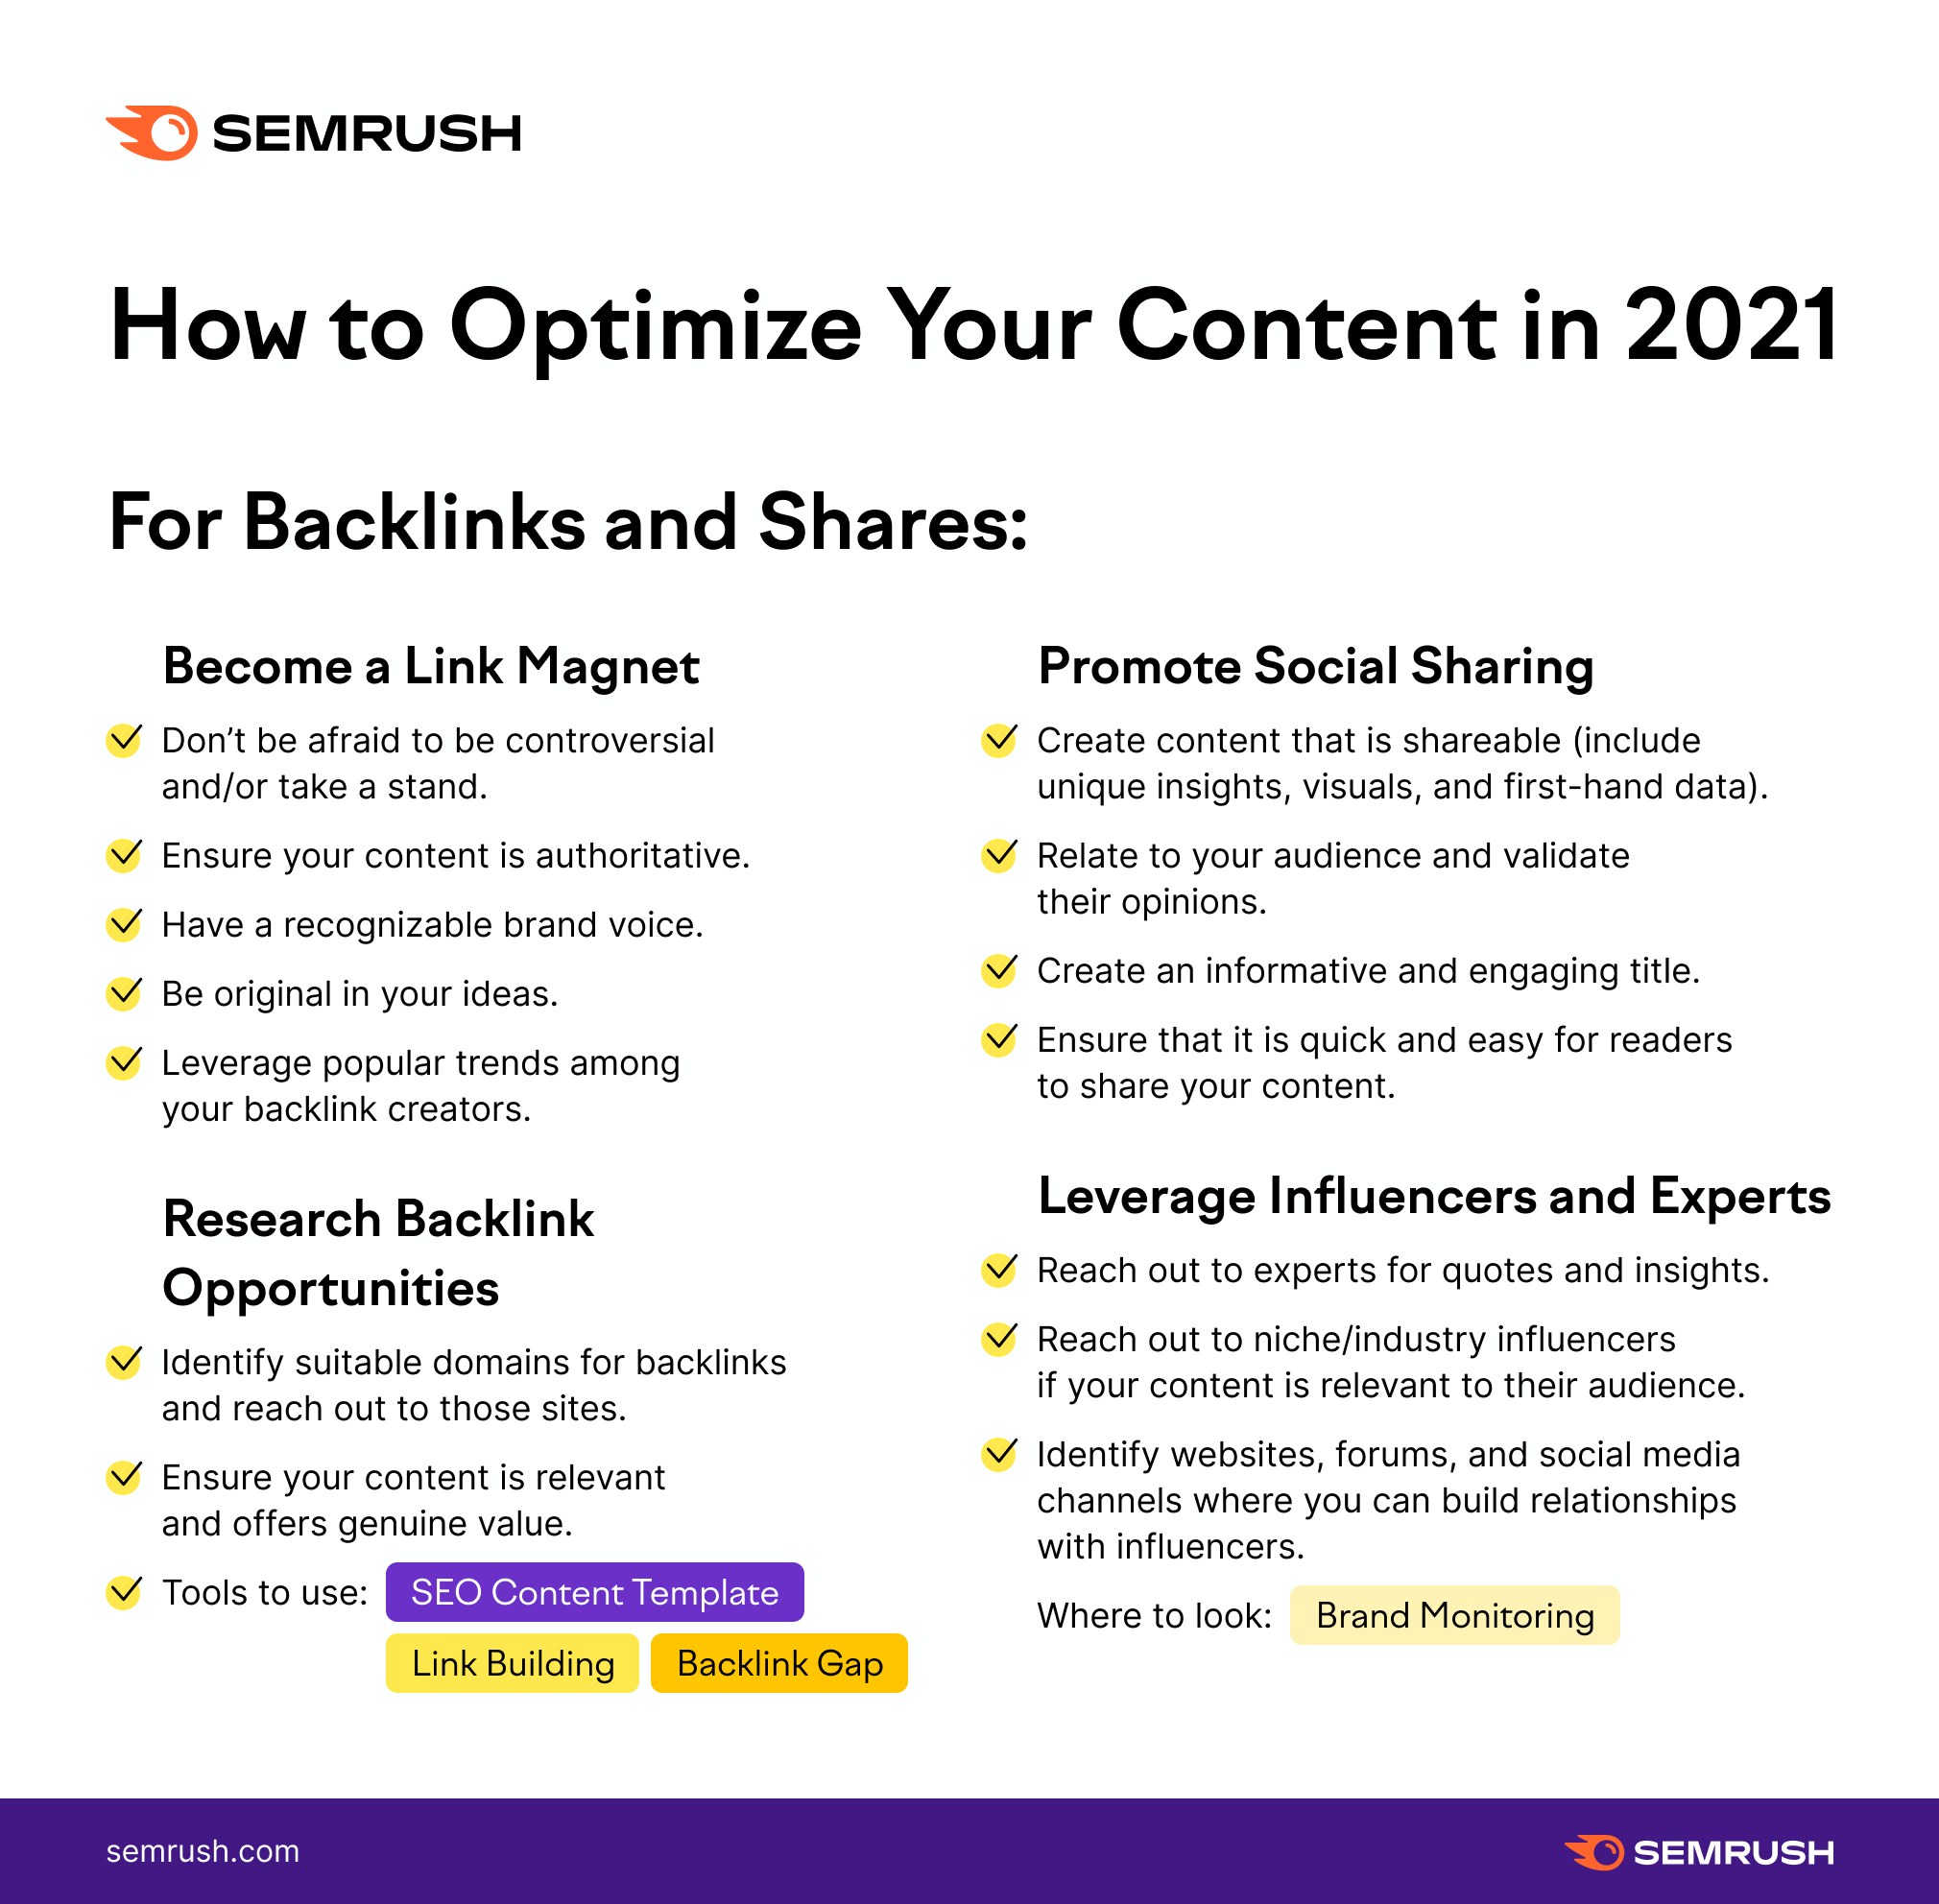 Infographic: content optimization - optimizing content for backlinks and shares